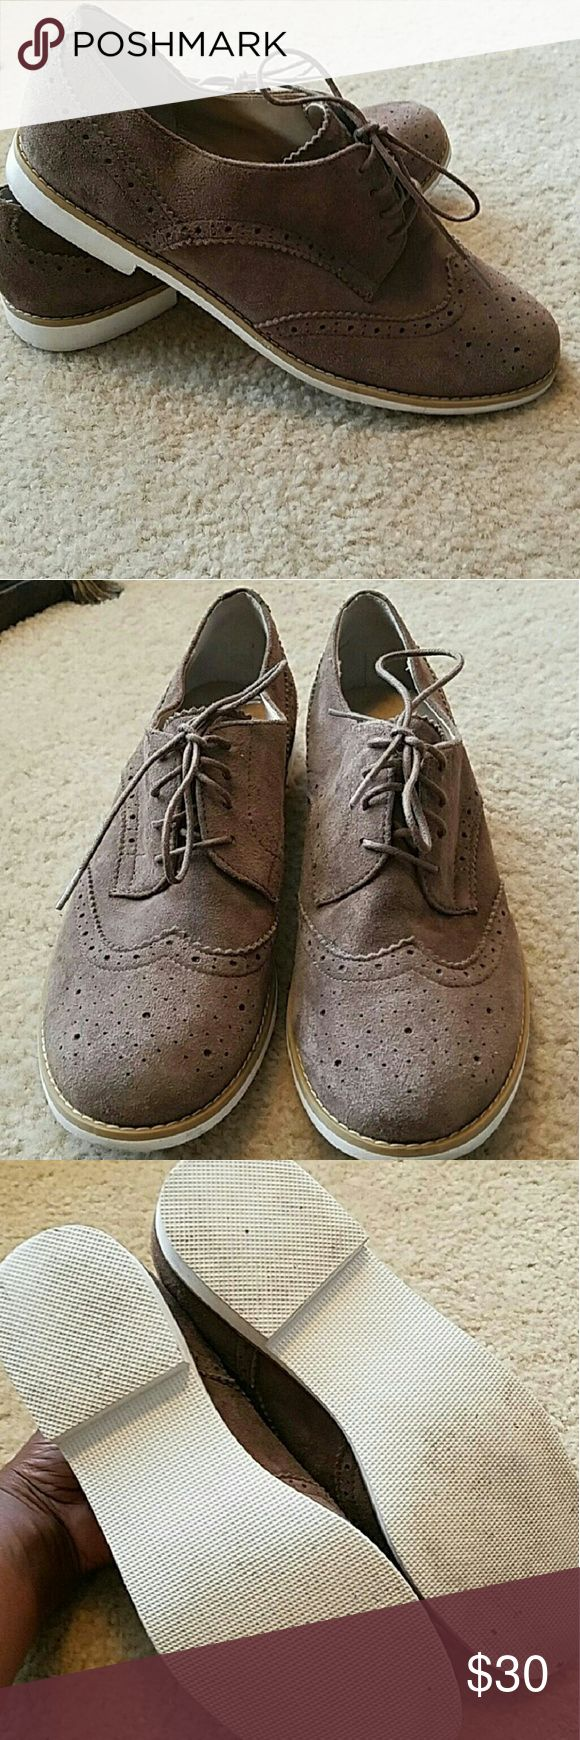 BP Nordstrom Suede Oxfords Taupe, genuine suede leather Oxfords in great condition. bp Shoes Flats & Loafers